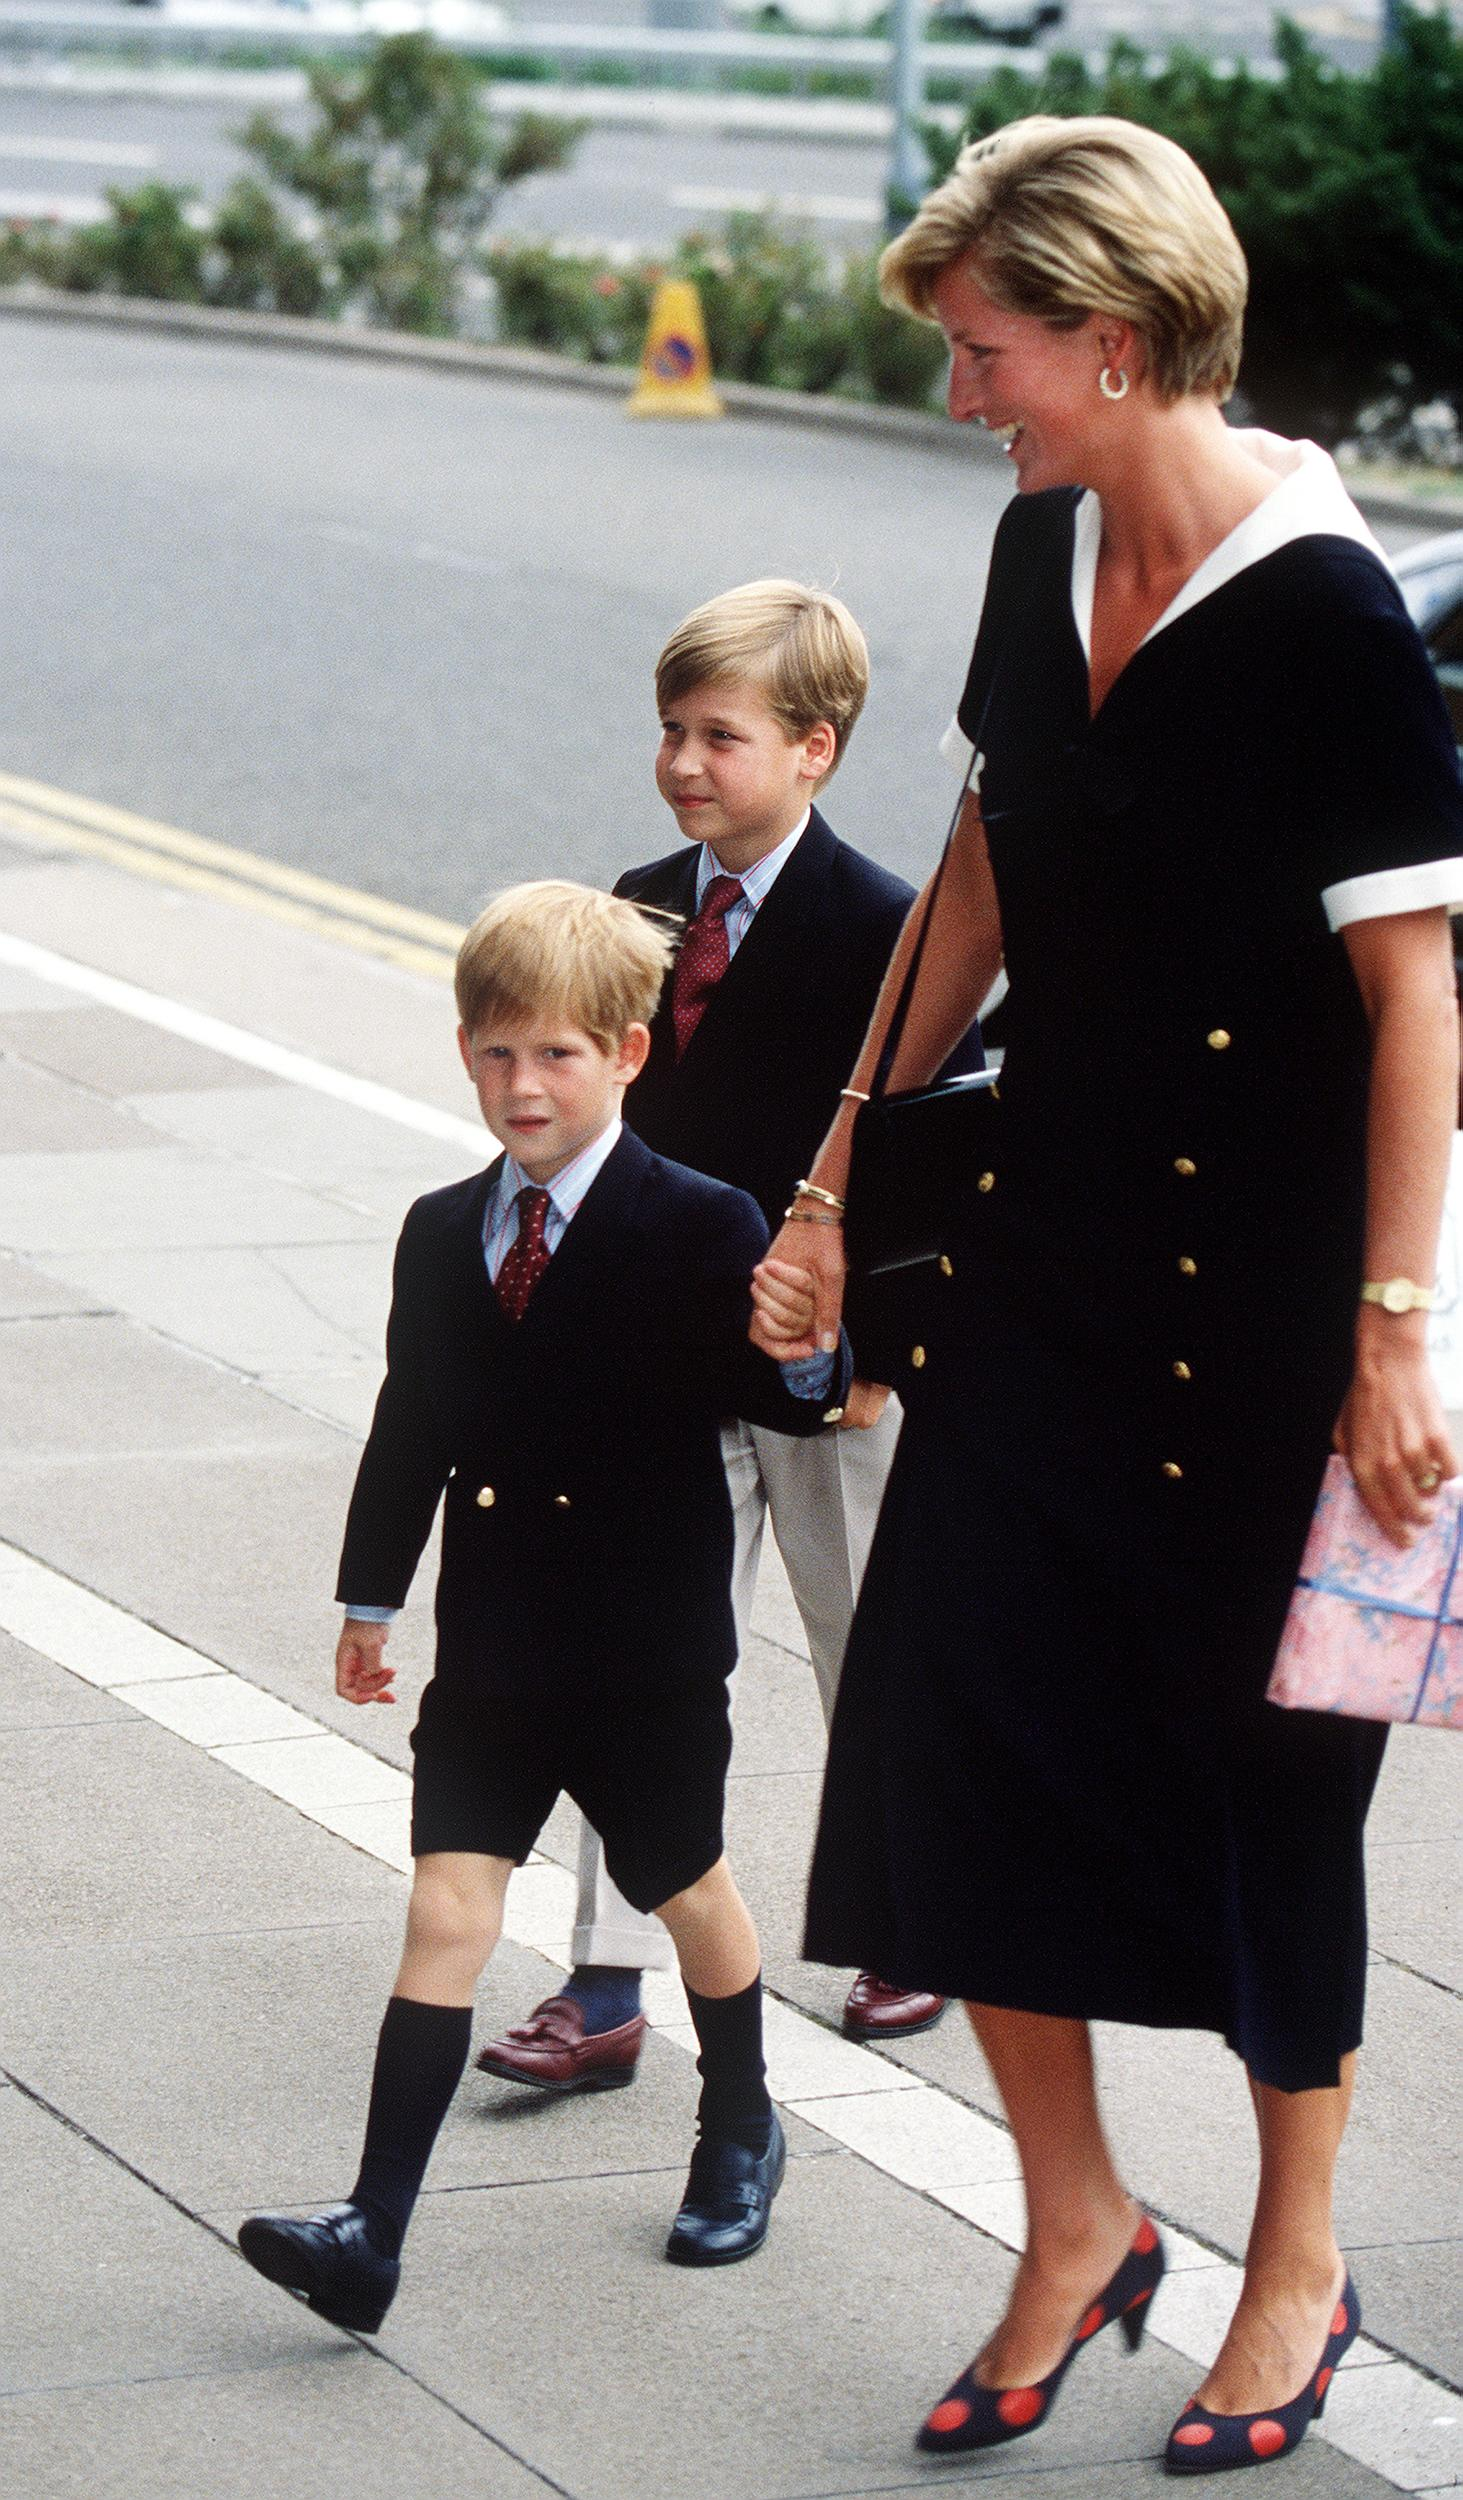 The Princess of Wales arrives at the Nottingham Medical Centre with her sons William and Harry, to visit the Prince of Wales after his operation, September 1990. She wears a black Chanel dress. (Photo by Jayne Fincher/Princess Diana Archive/Getty Images)